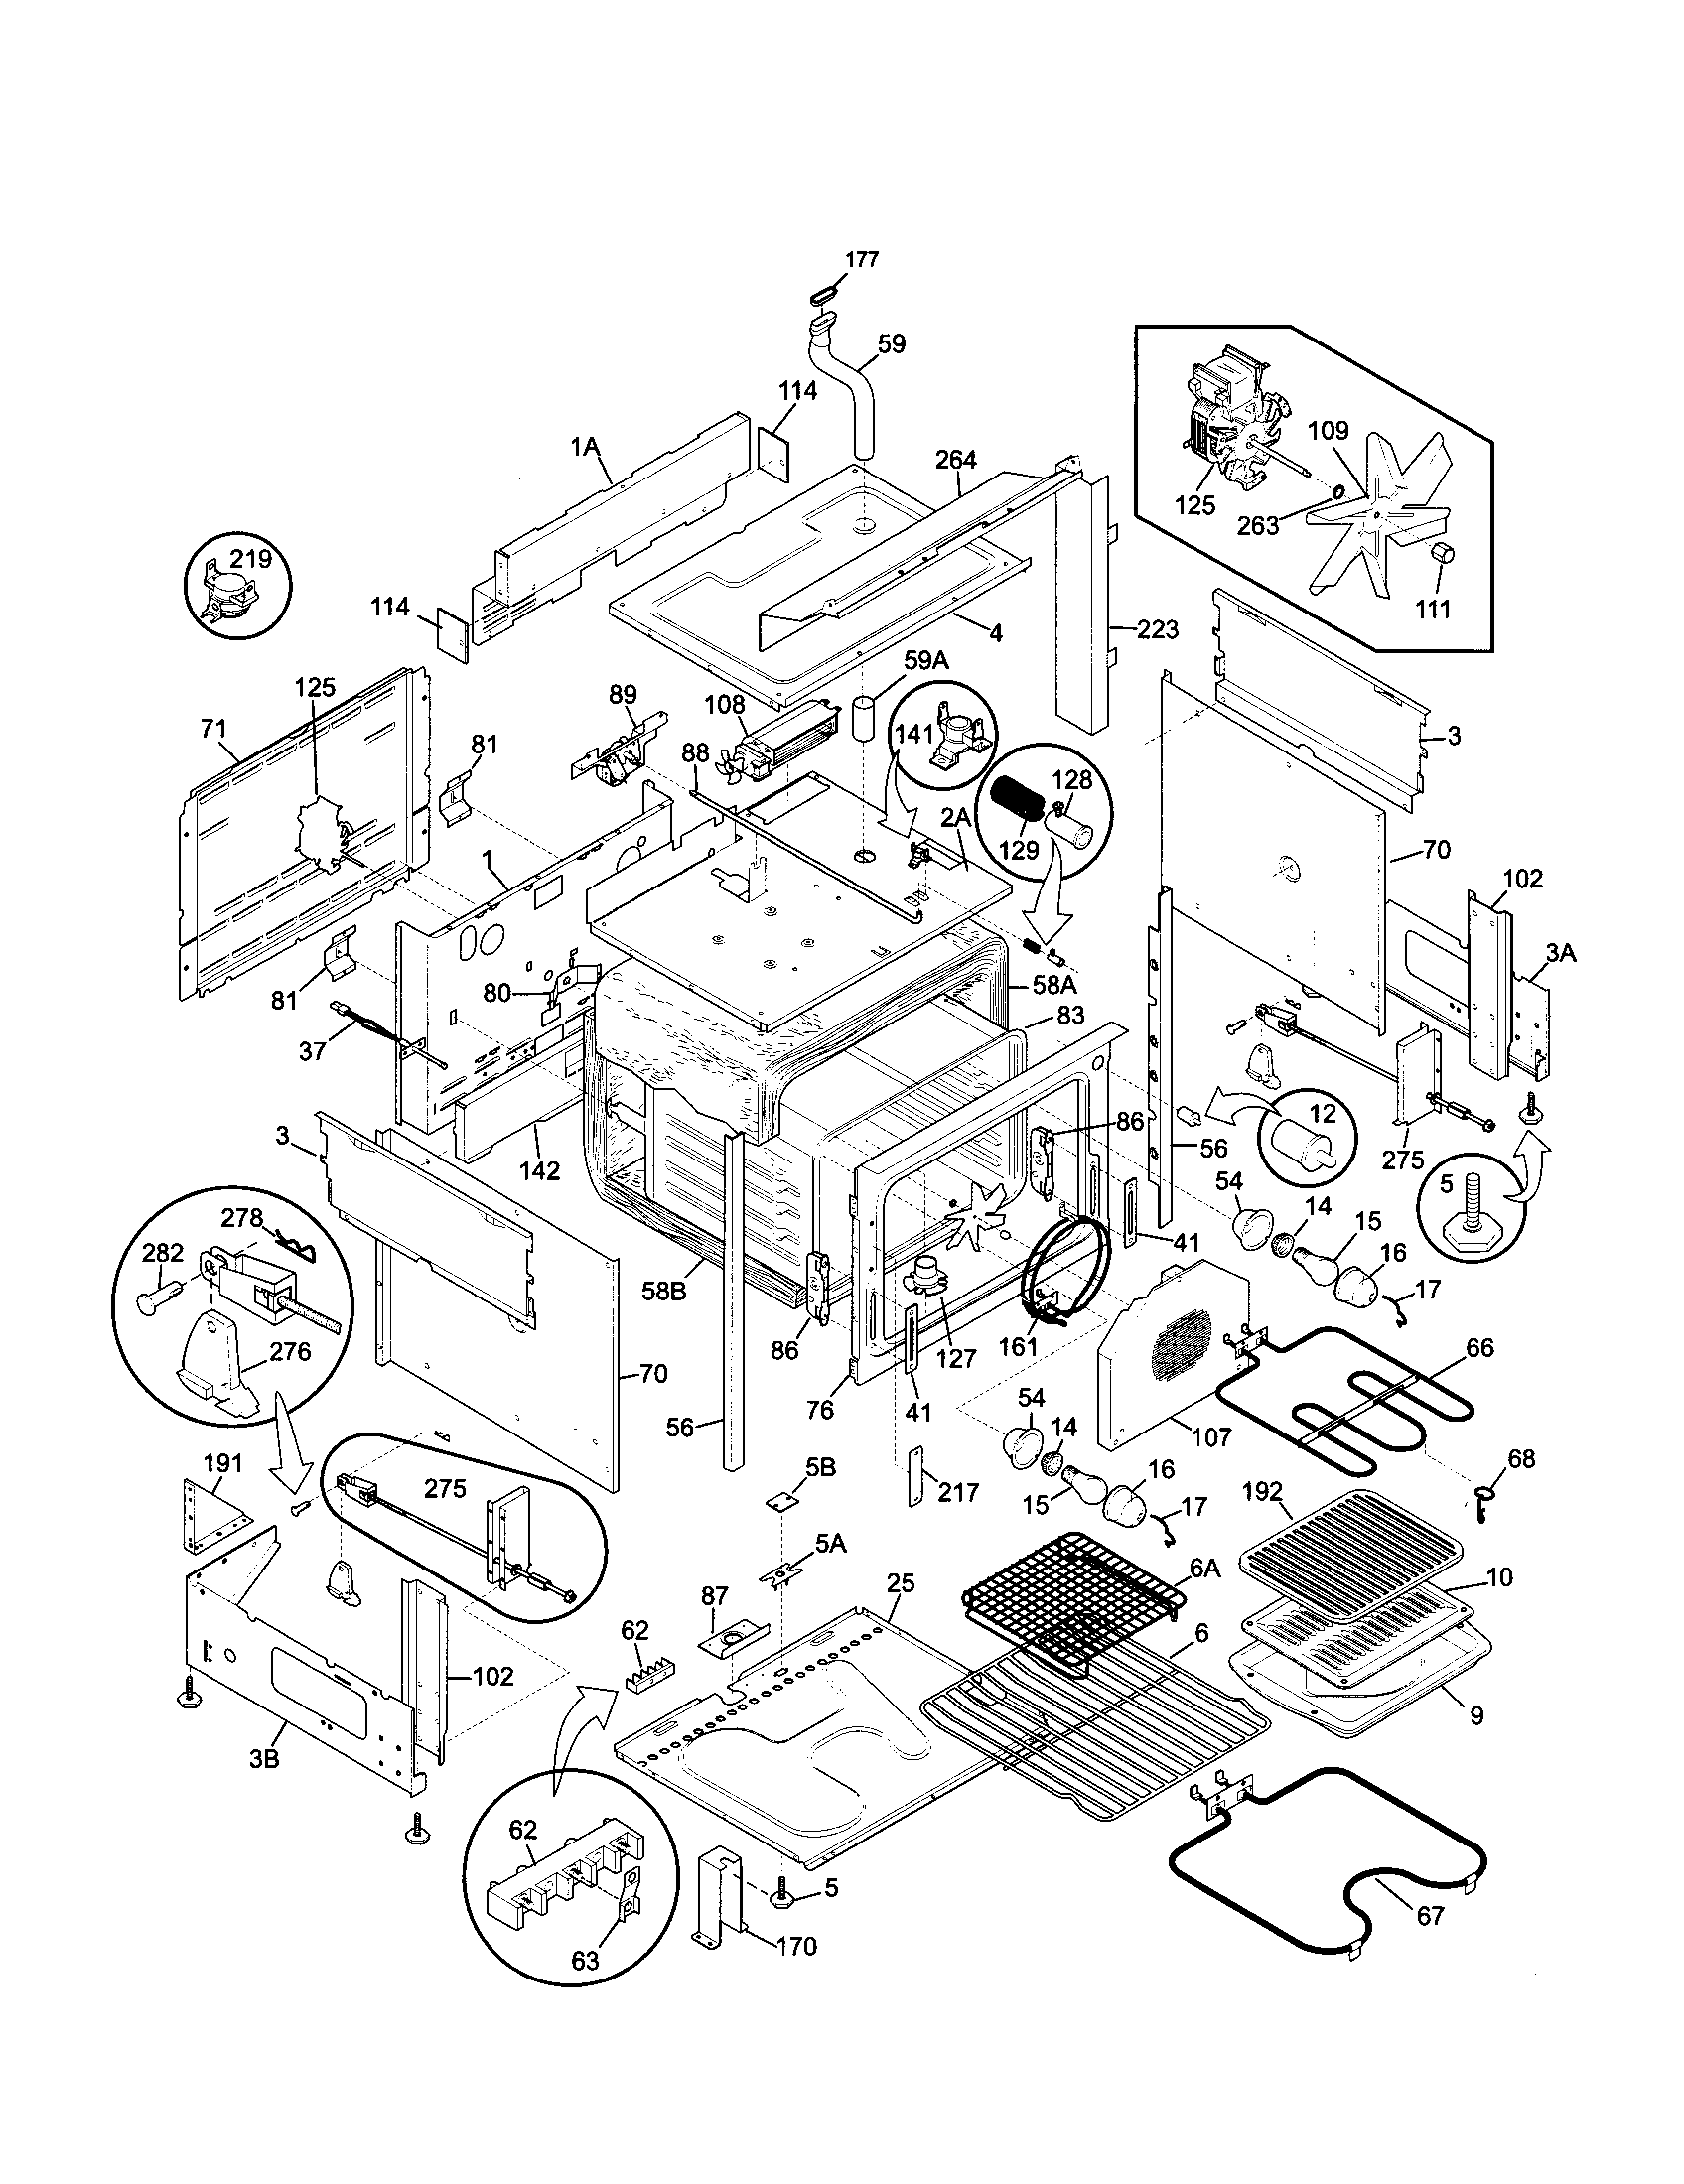 kenmore elite dishwasher wiring diagram - wiring diagram ... wiring diagram kenmore dishwasher thermostat wiring diagram kenmore 36291112004